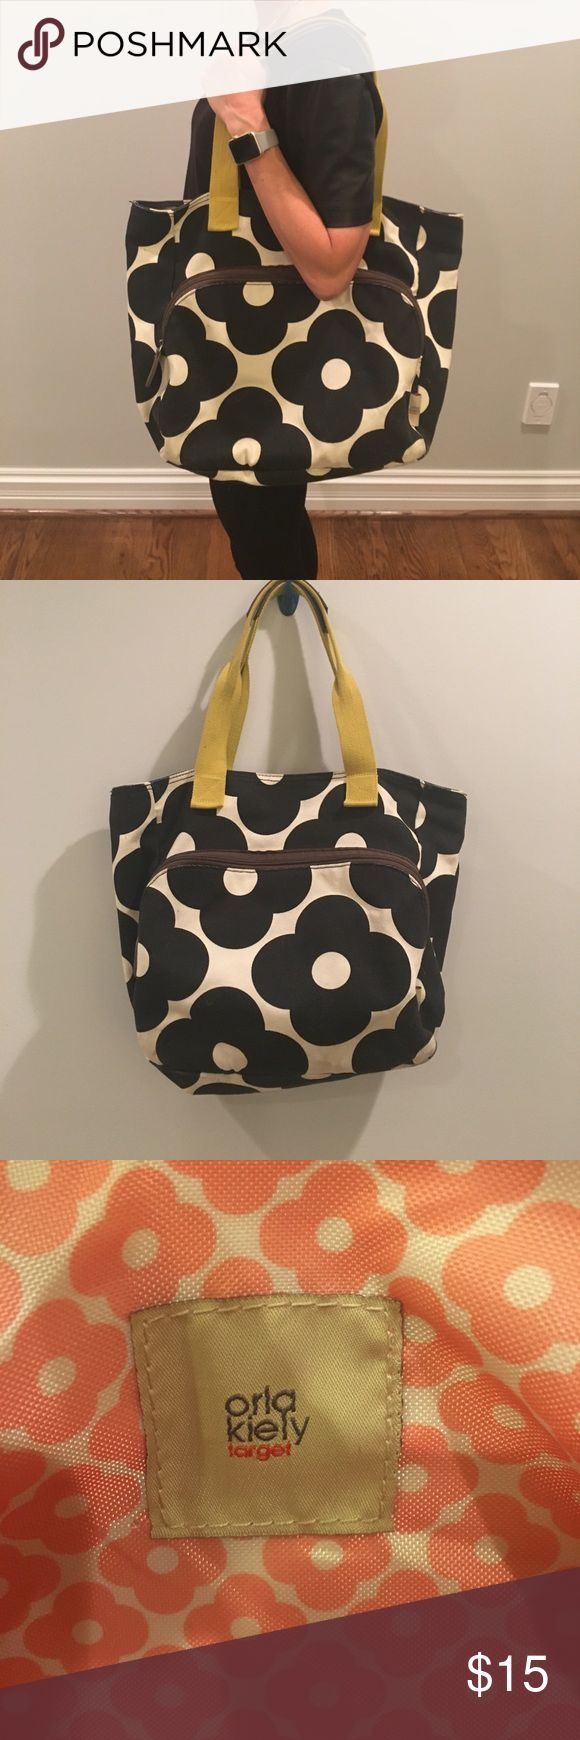 Orla Kelly for Target yoga bag Durable bag with front pocket perfect to slip a yoga mat in. I used this as a diaper bag and it worked great! Orla Kiely Bags Totes